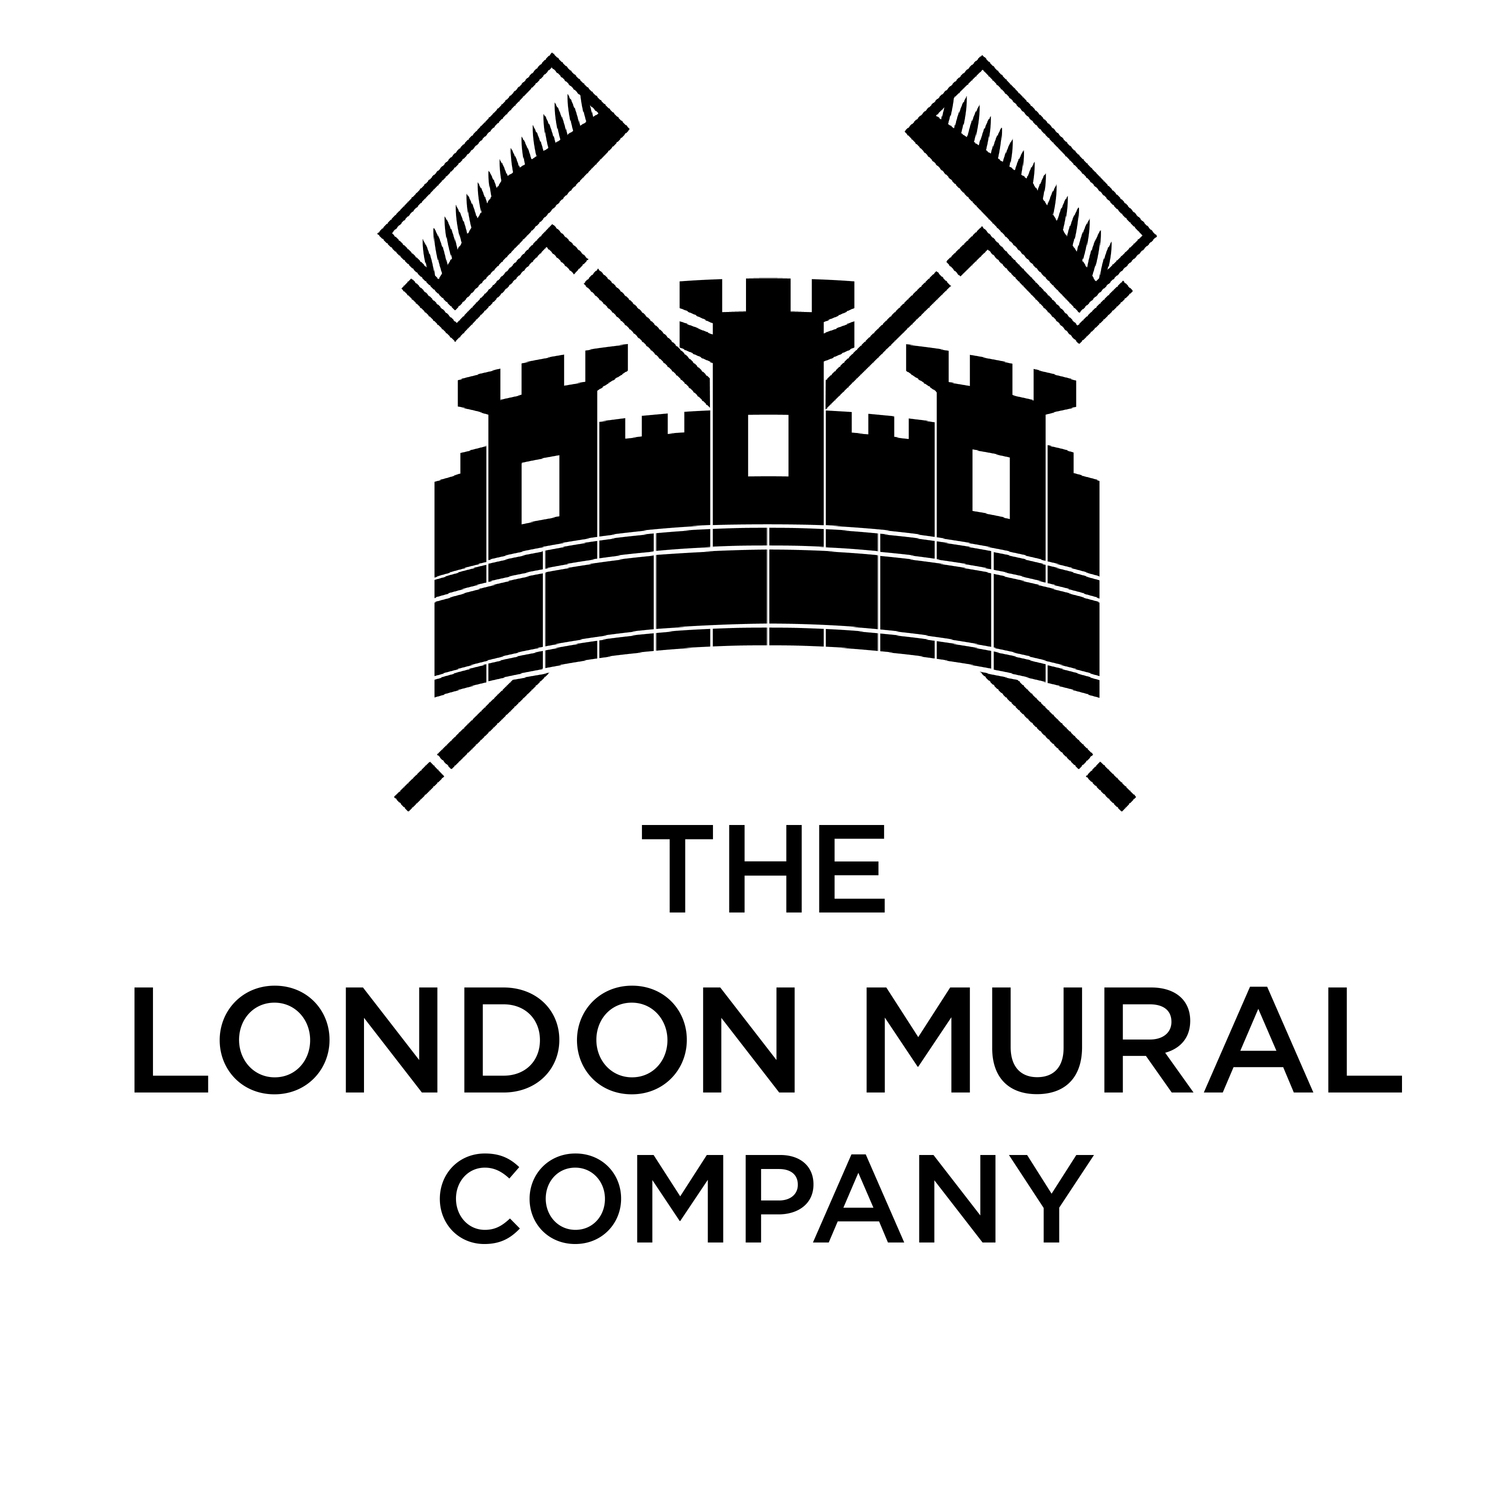 The London Mural Company